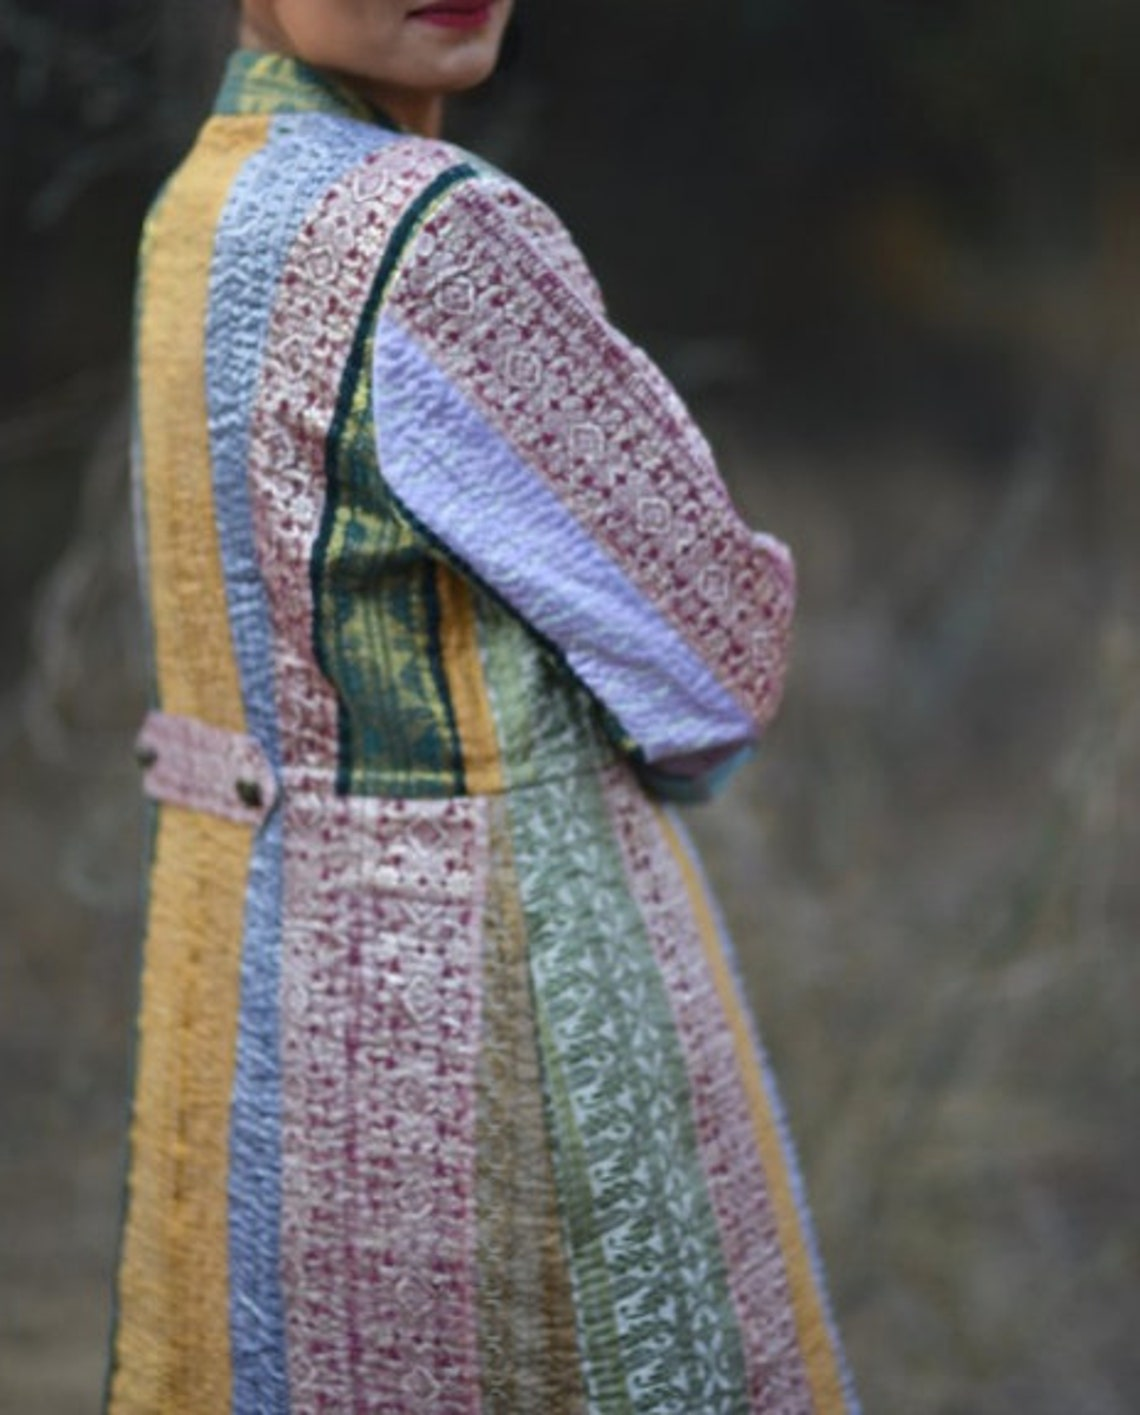 Indian Vintage Kantha Quilted Handcrafted Upcycled Brocade Bohochic, Lightweight Long Women's Jacket - Multicoloured